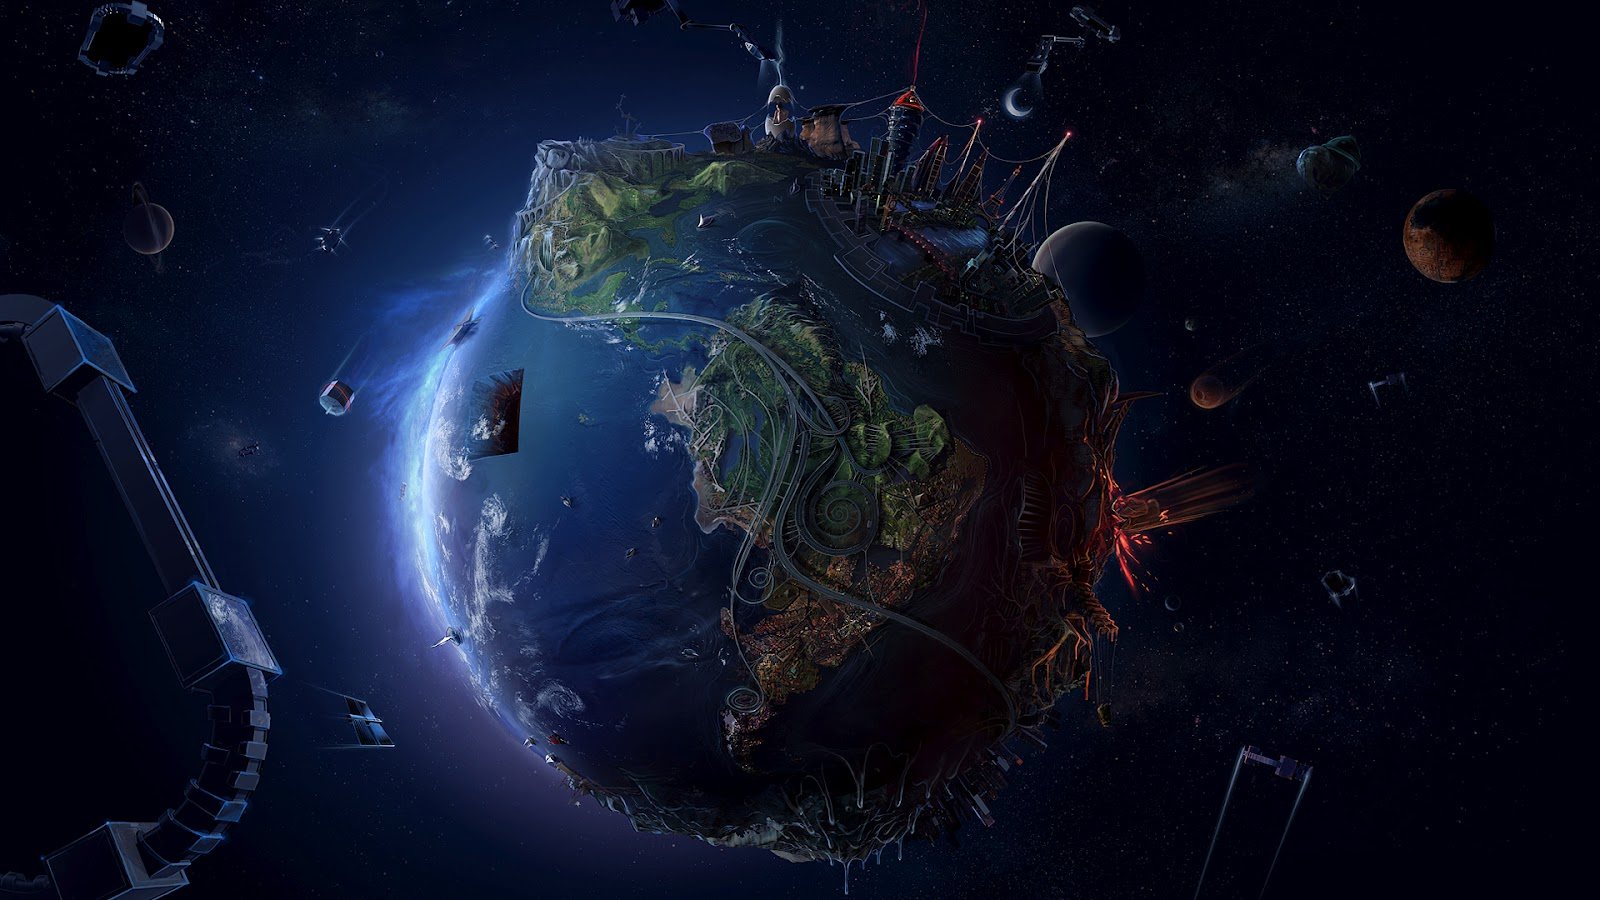 Animated Globe HD Wallpaper, Space HD Wallpaper, 3D Space HQ Wallpaper